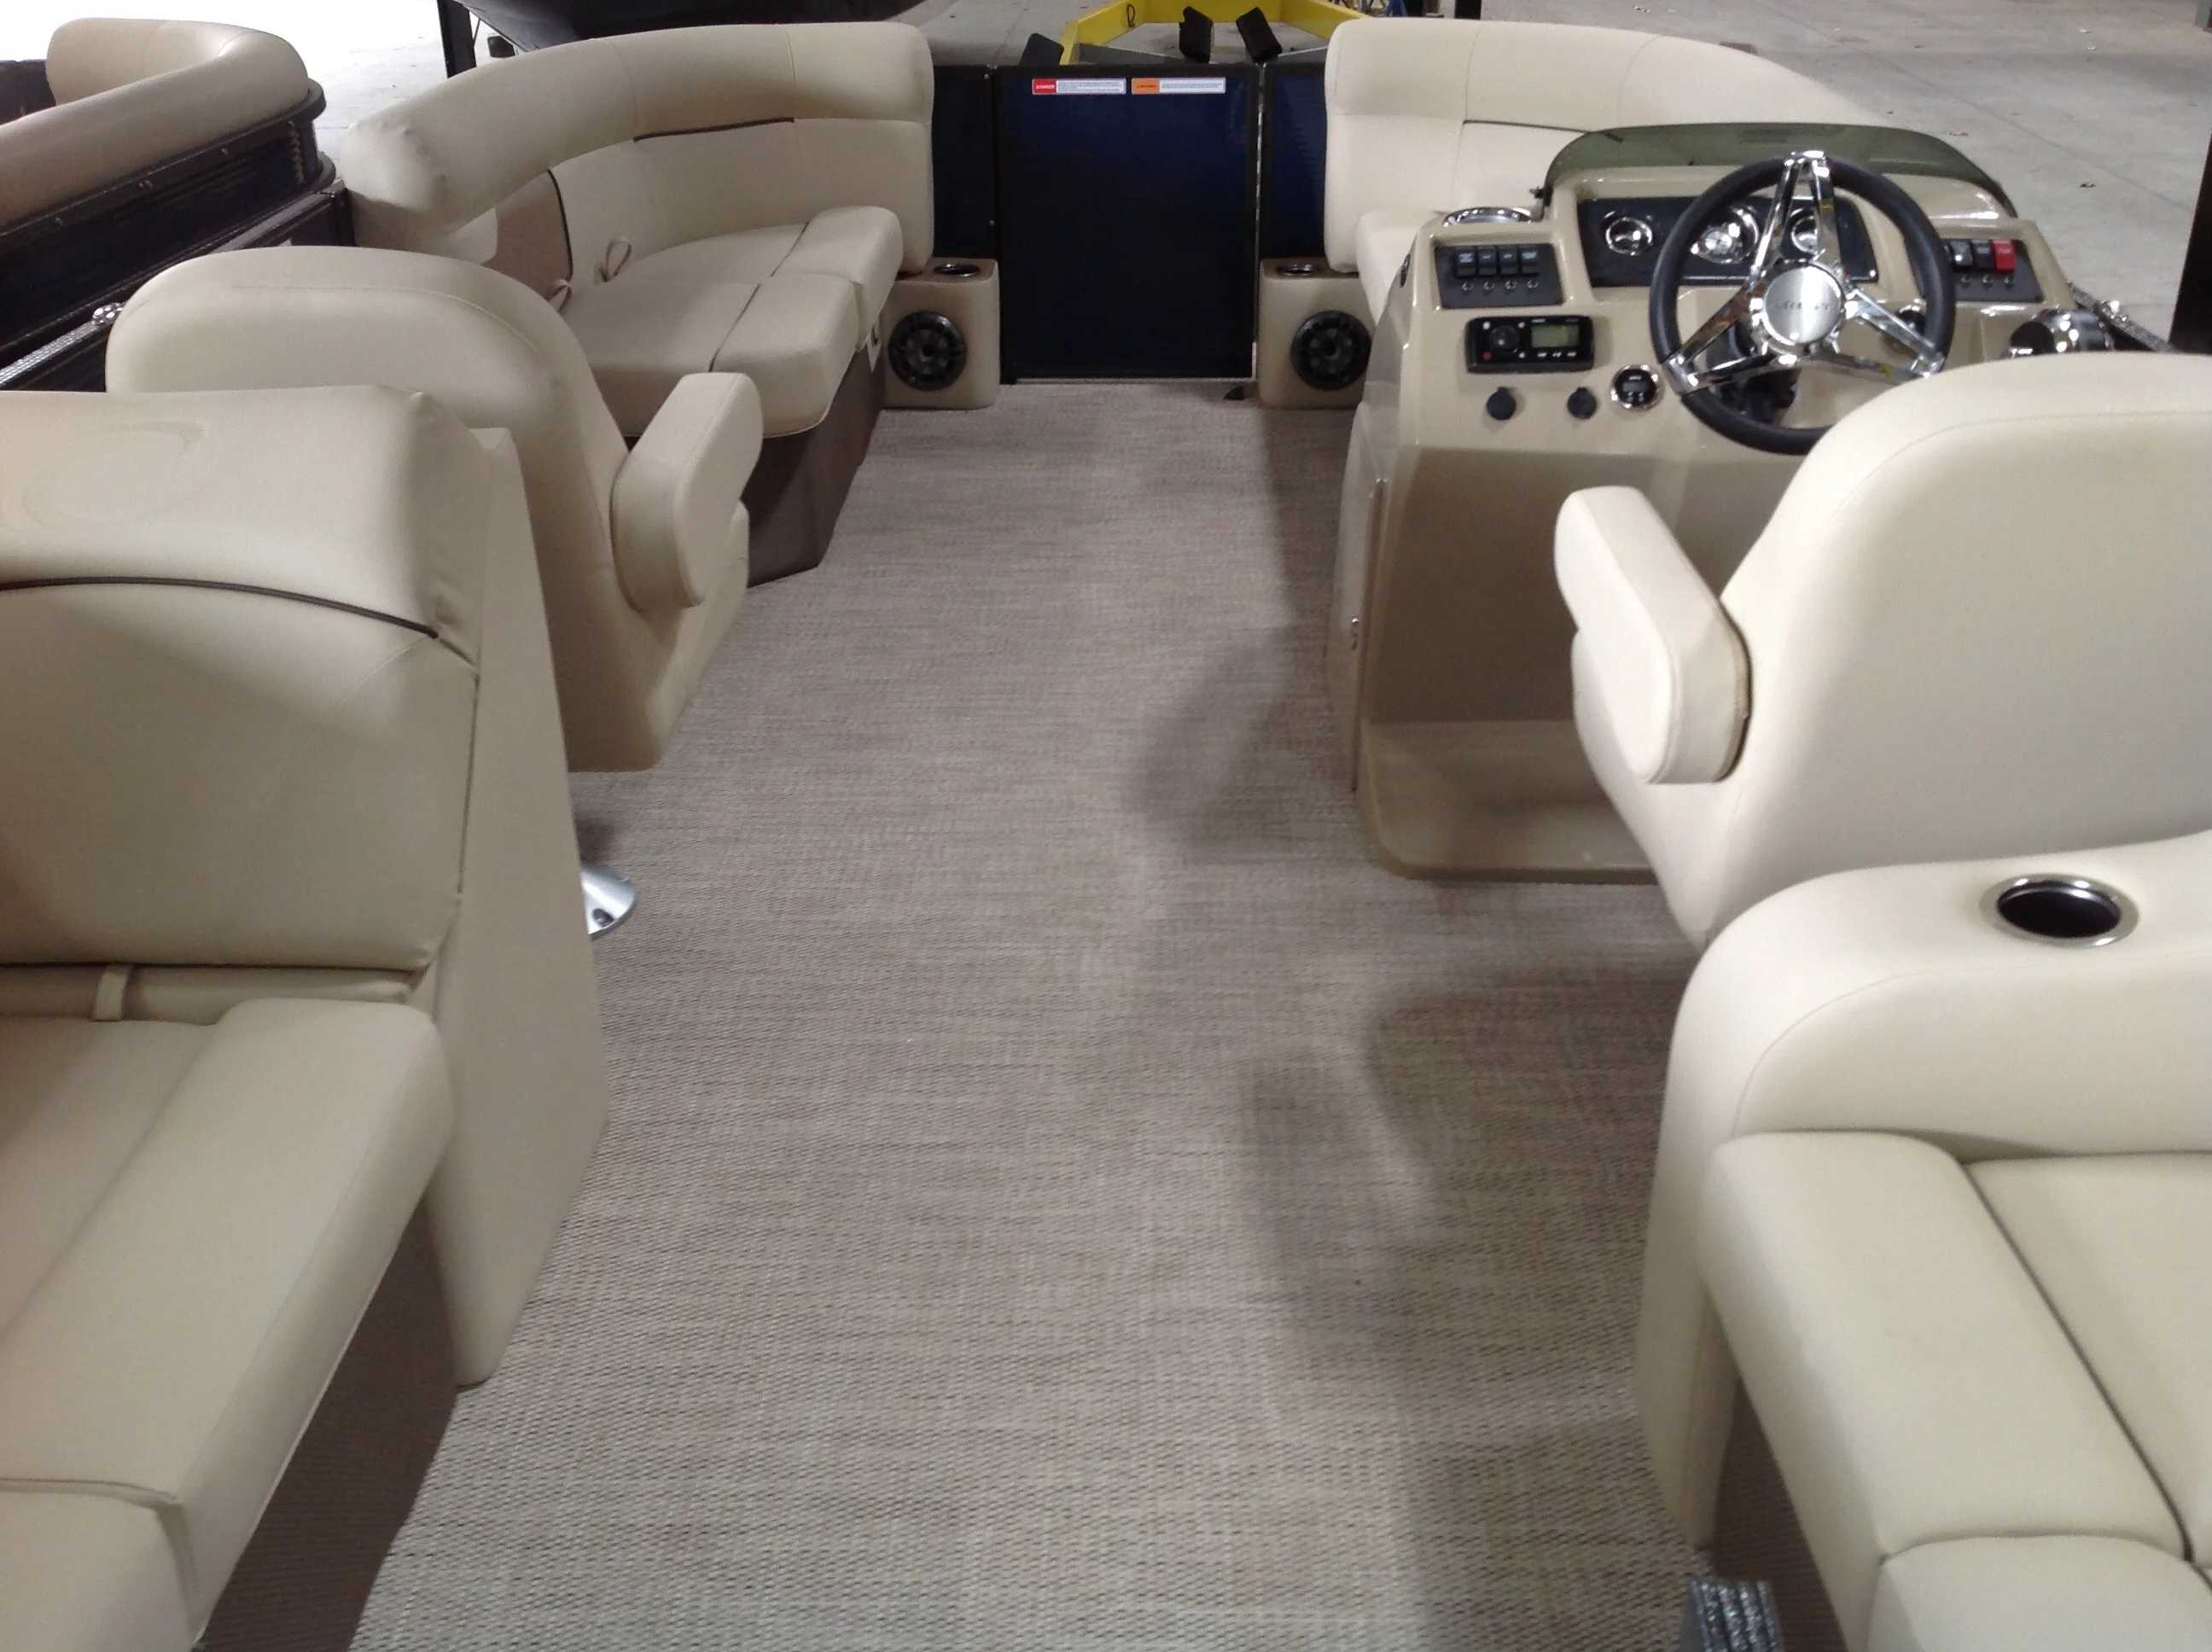 2021 Crest boat for sale, model of the boat is Cl Lx 200slc & Image # 12 of 13